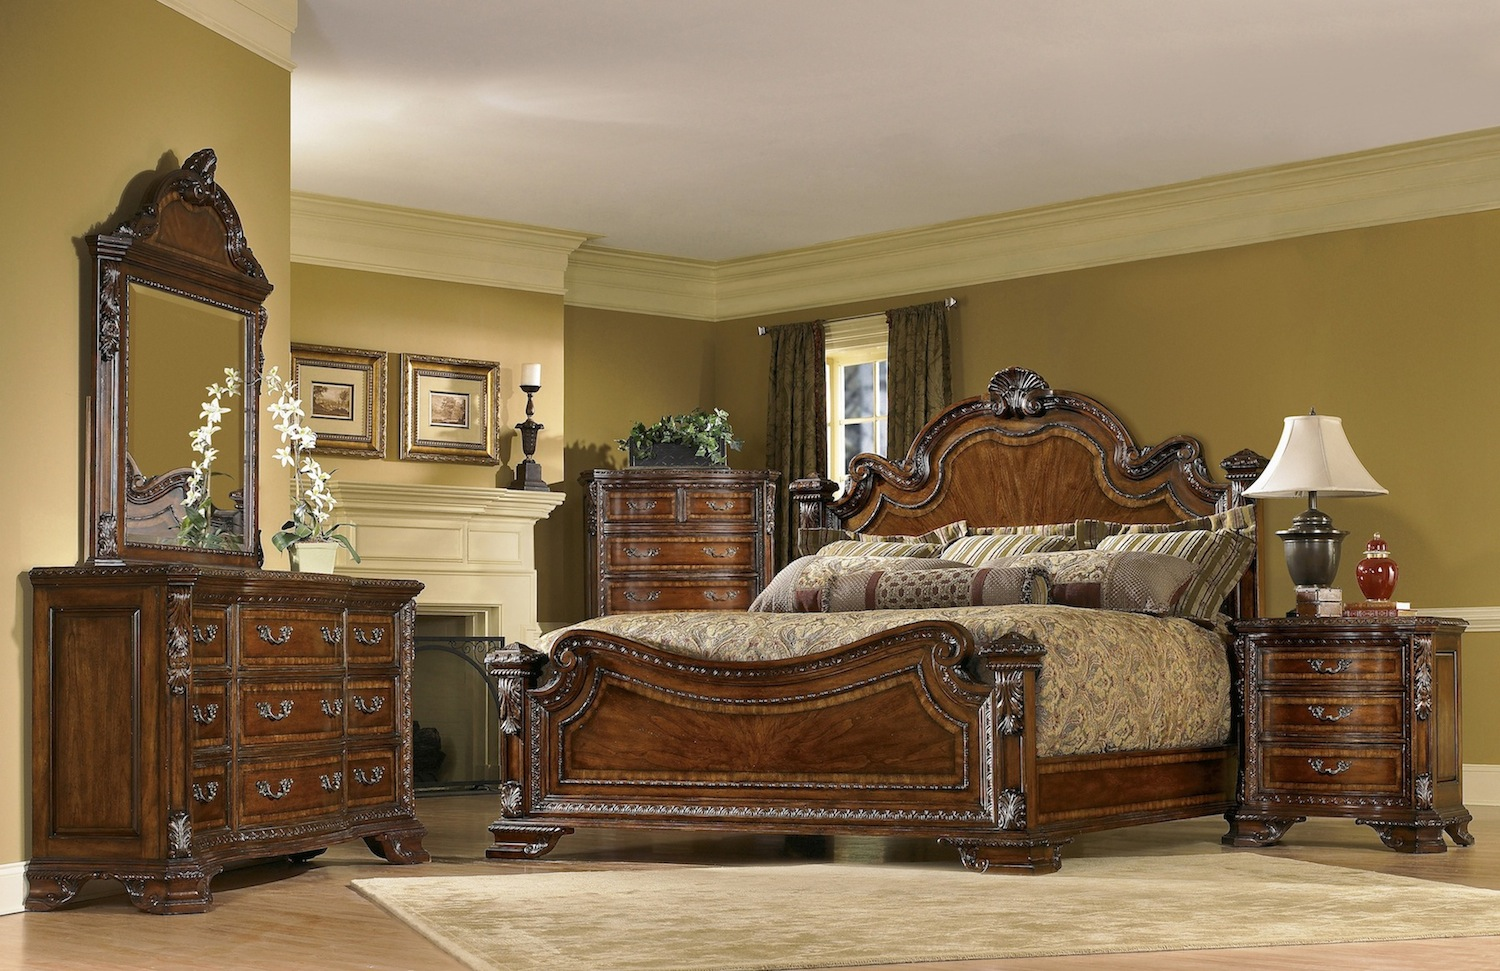 Old world traditional european style bedroom furniture set for Old world style beds